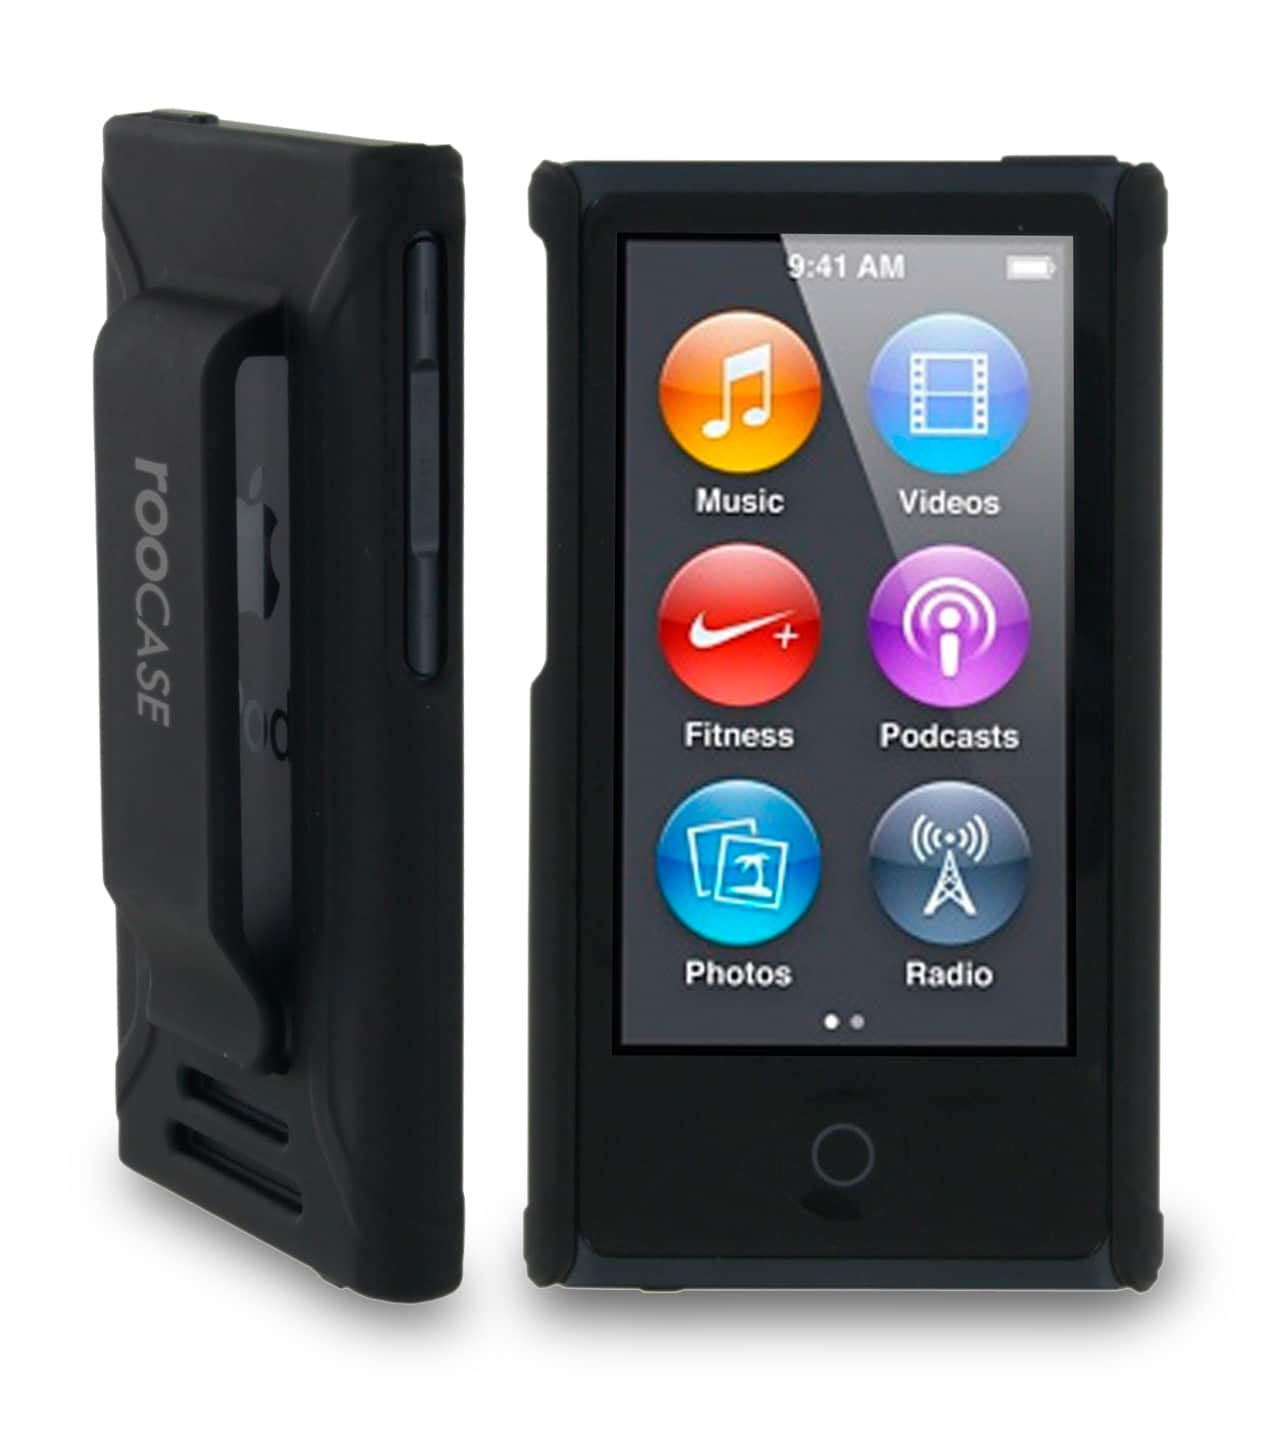 roocase Ultra Slim Case for Apple iPod Nano 7